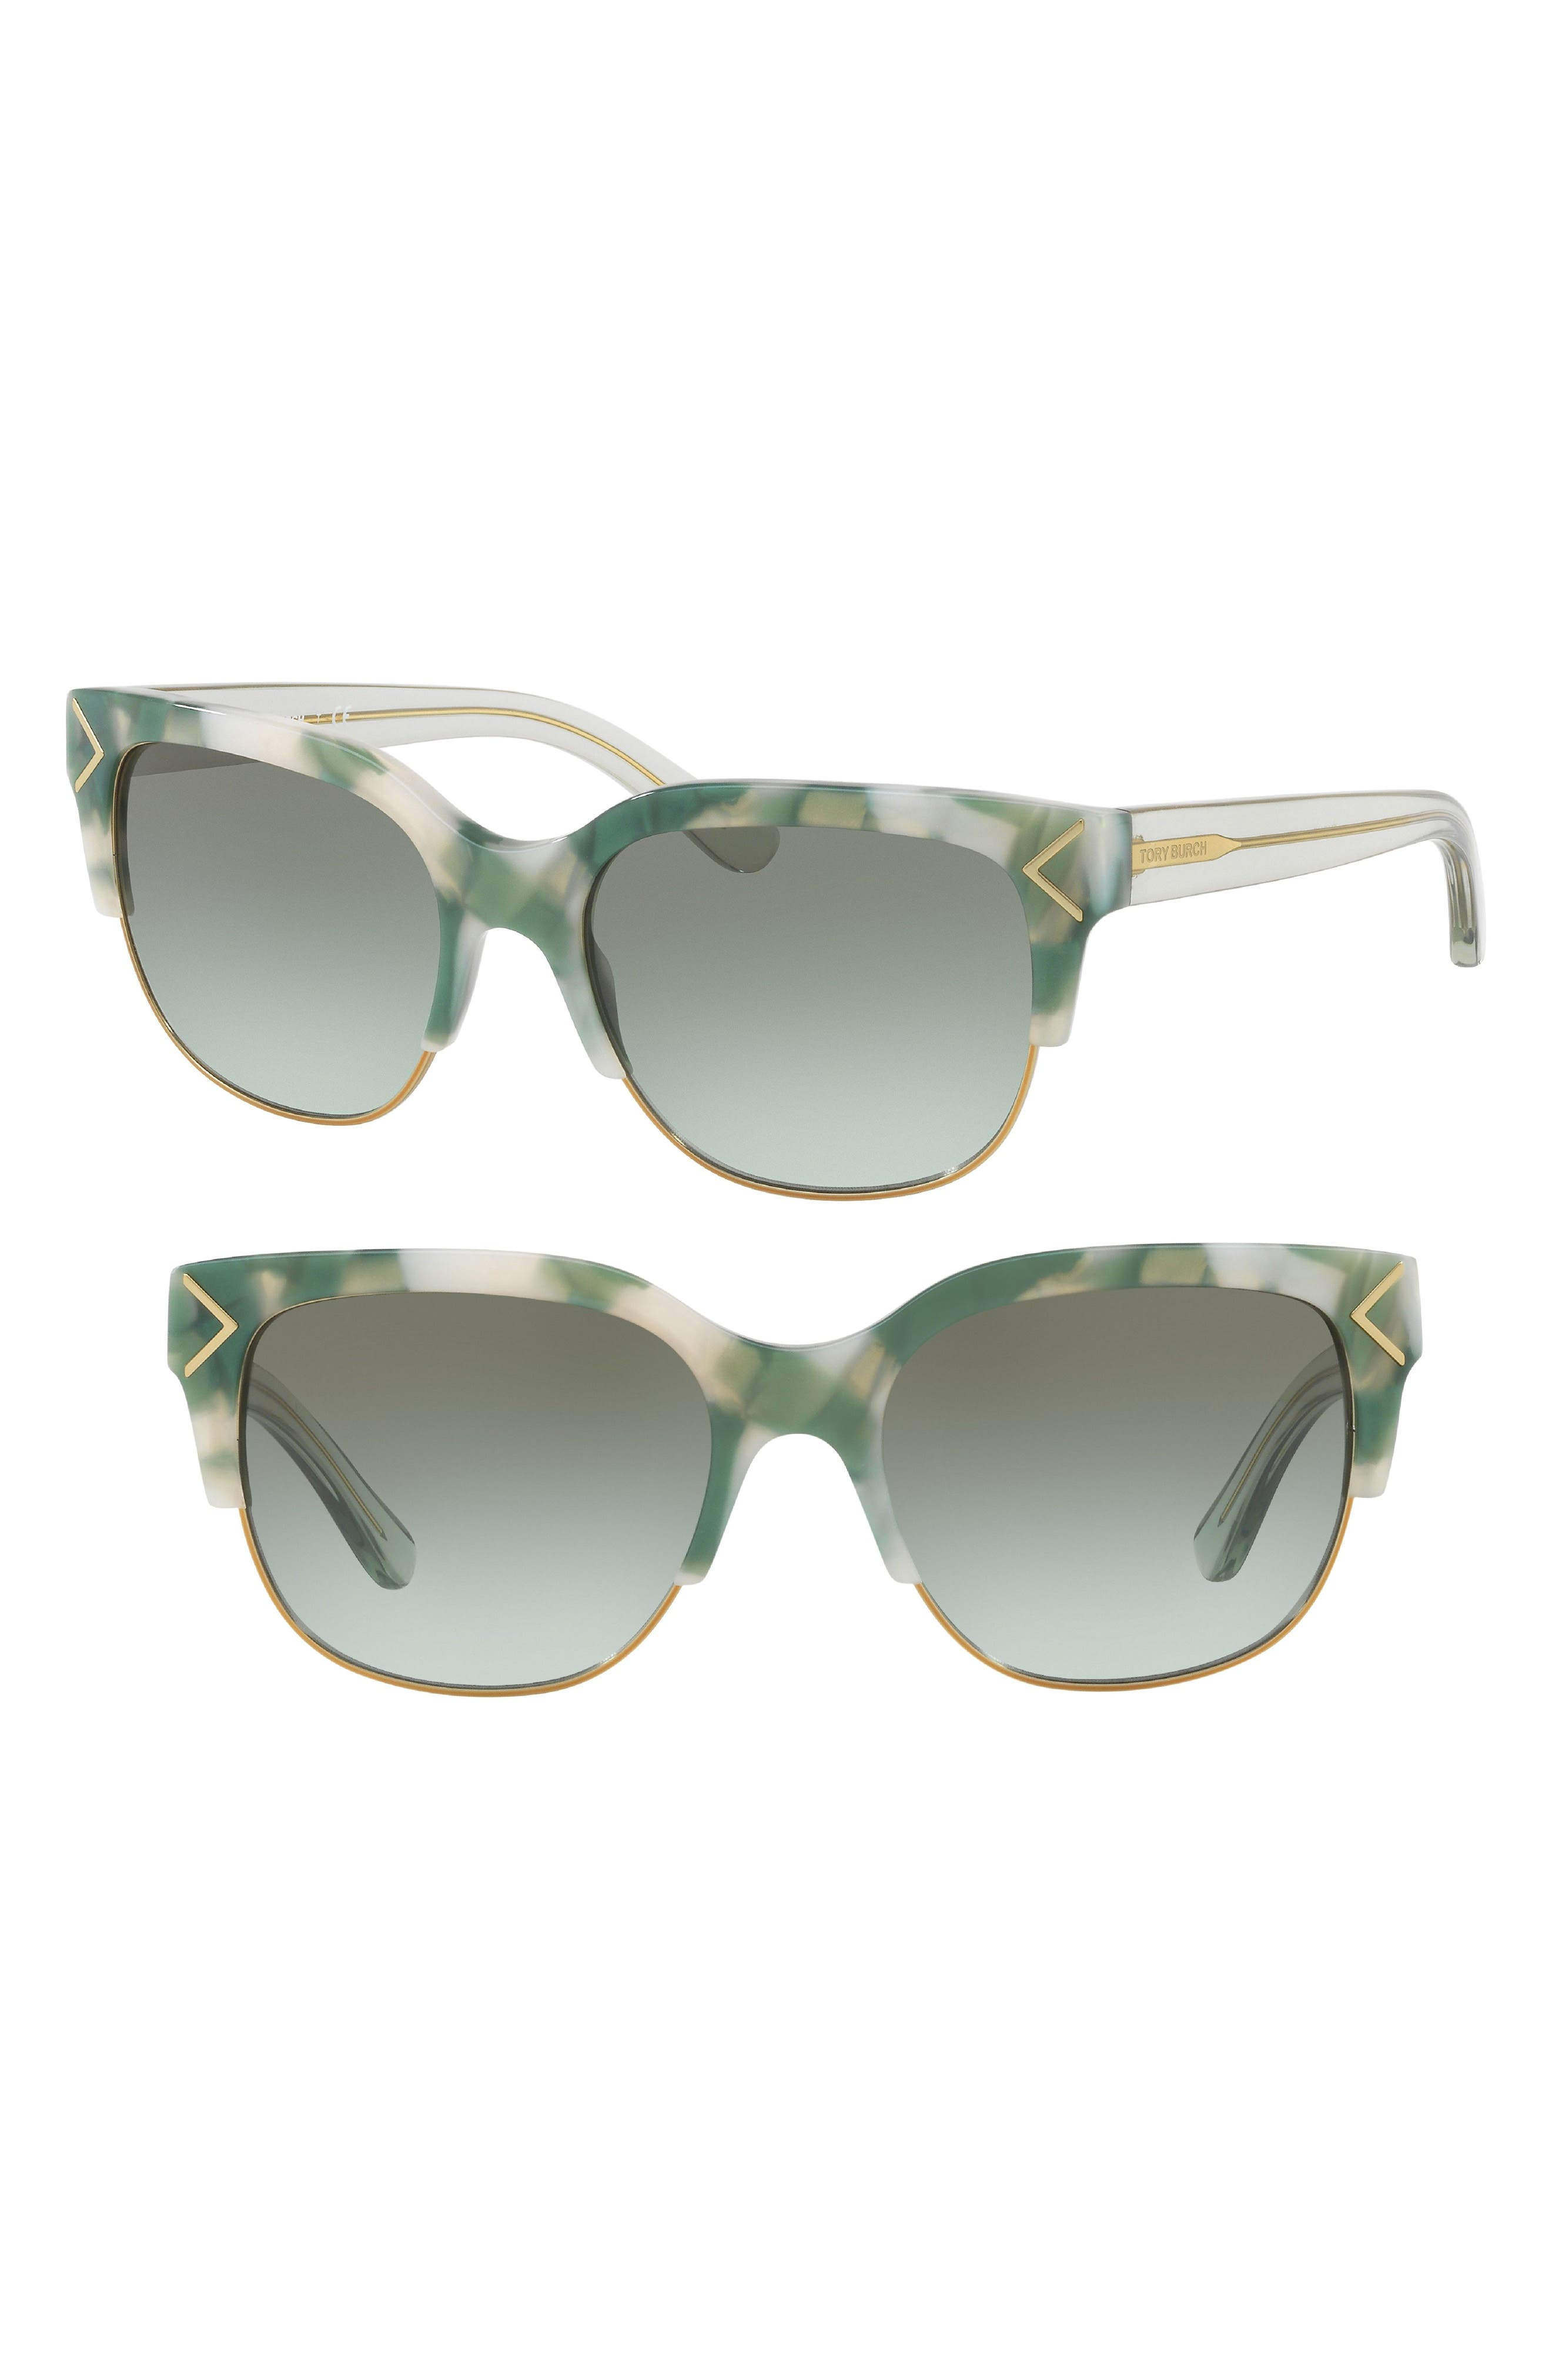 TORY BURCH,                             55mm Gradient Square Sunglasses,                             Main thumbnail 1, color,                             001